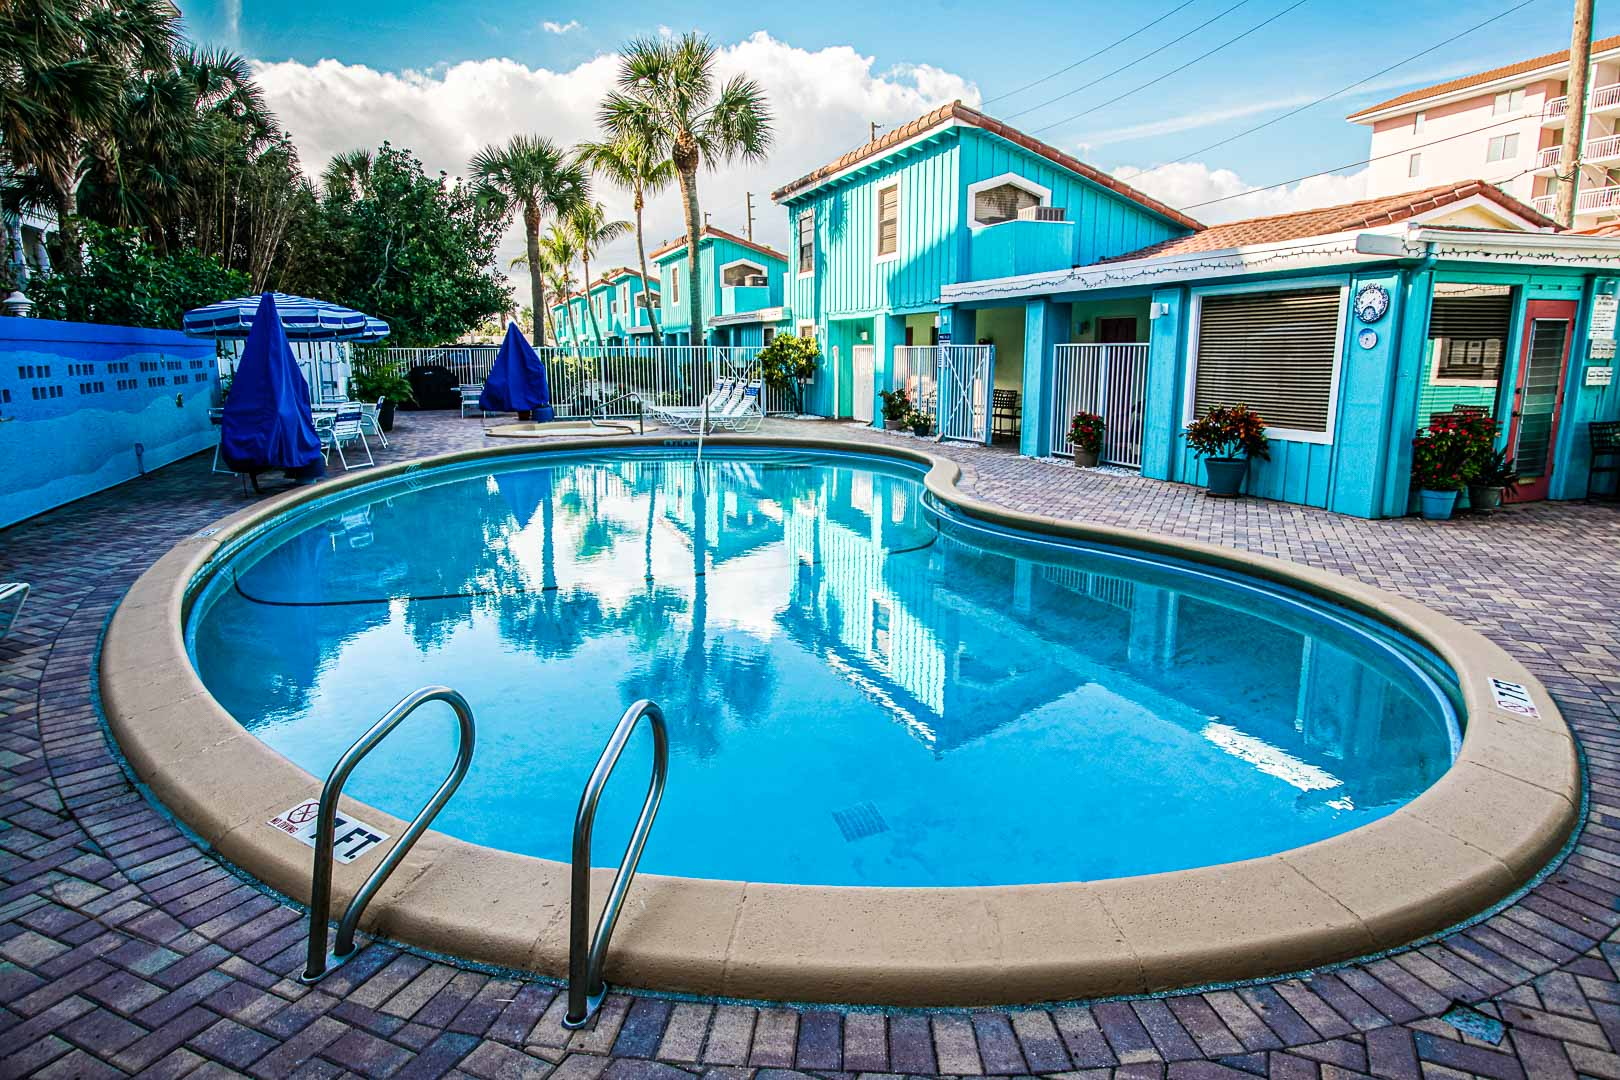 A relaxing swimming pool at VRI's Sand Dune Shores in Florida.